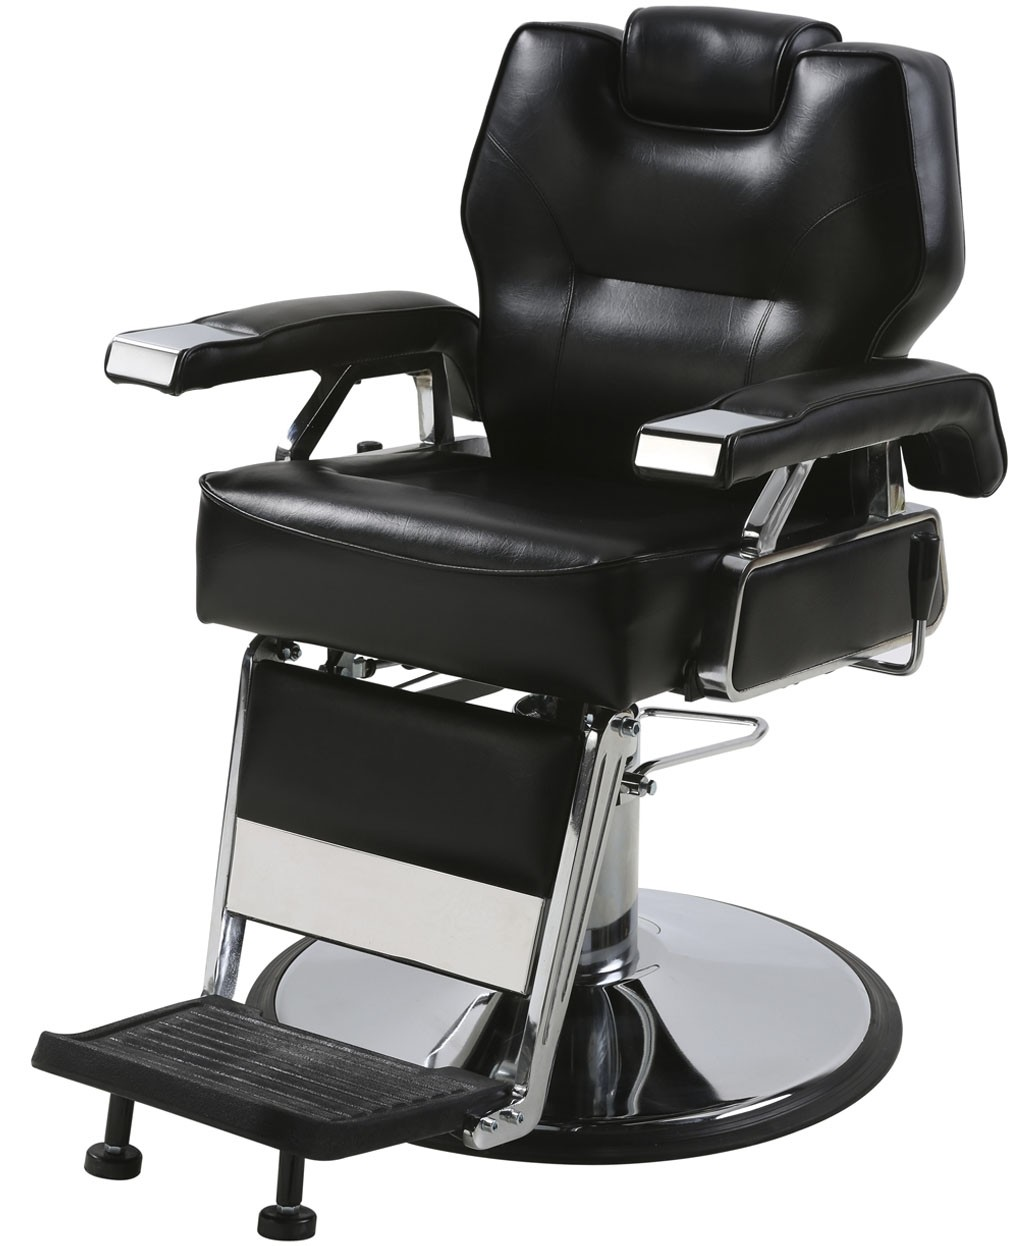 keller barber chair parts 6 dining chairs and table wholesale heavy duty professional shop k o